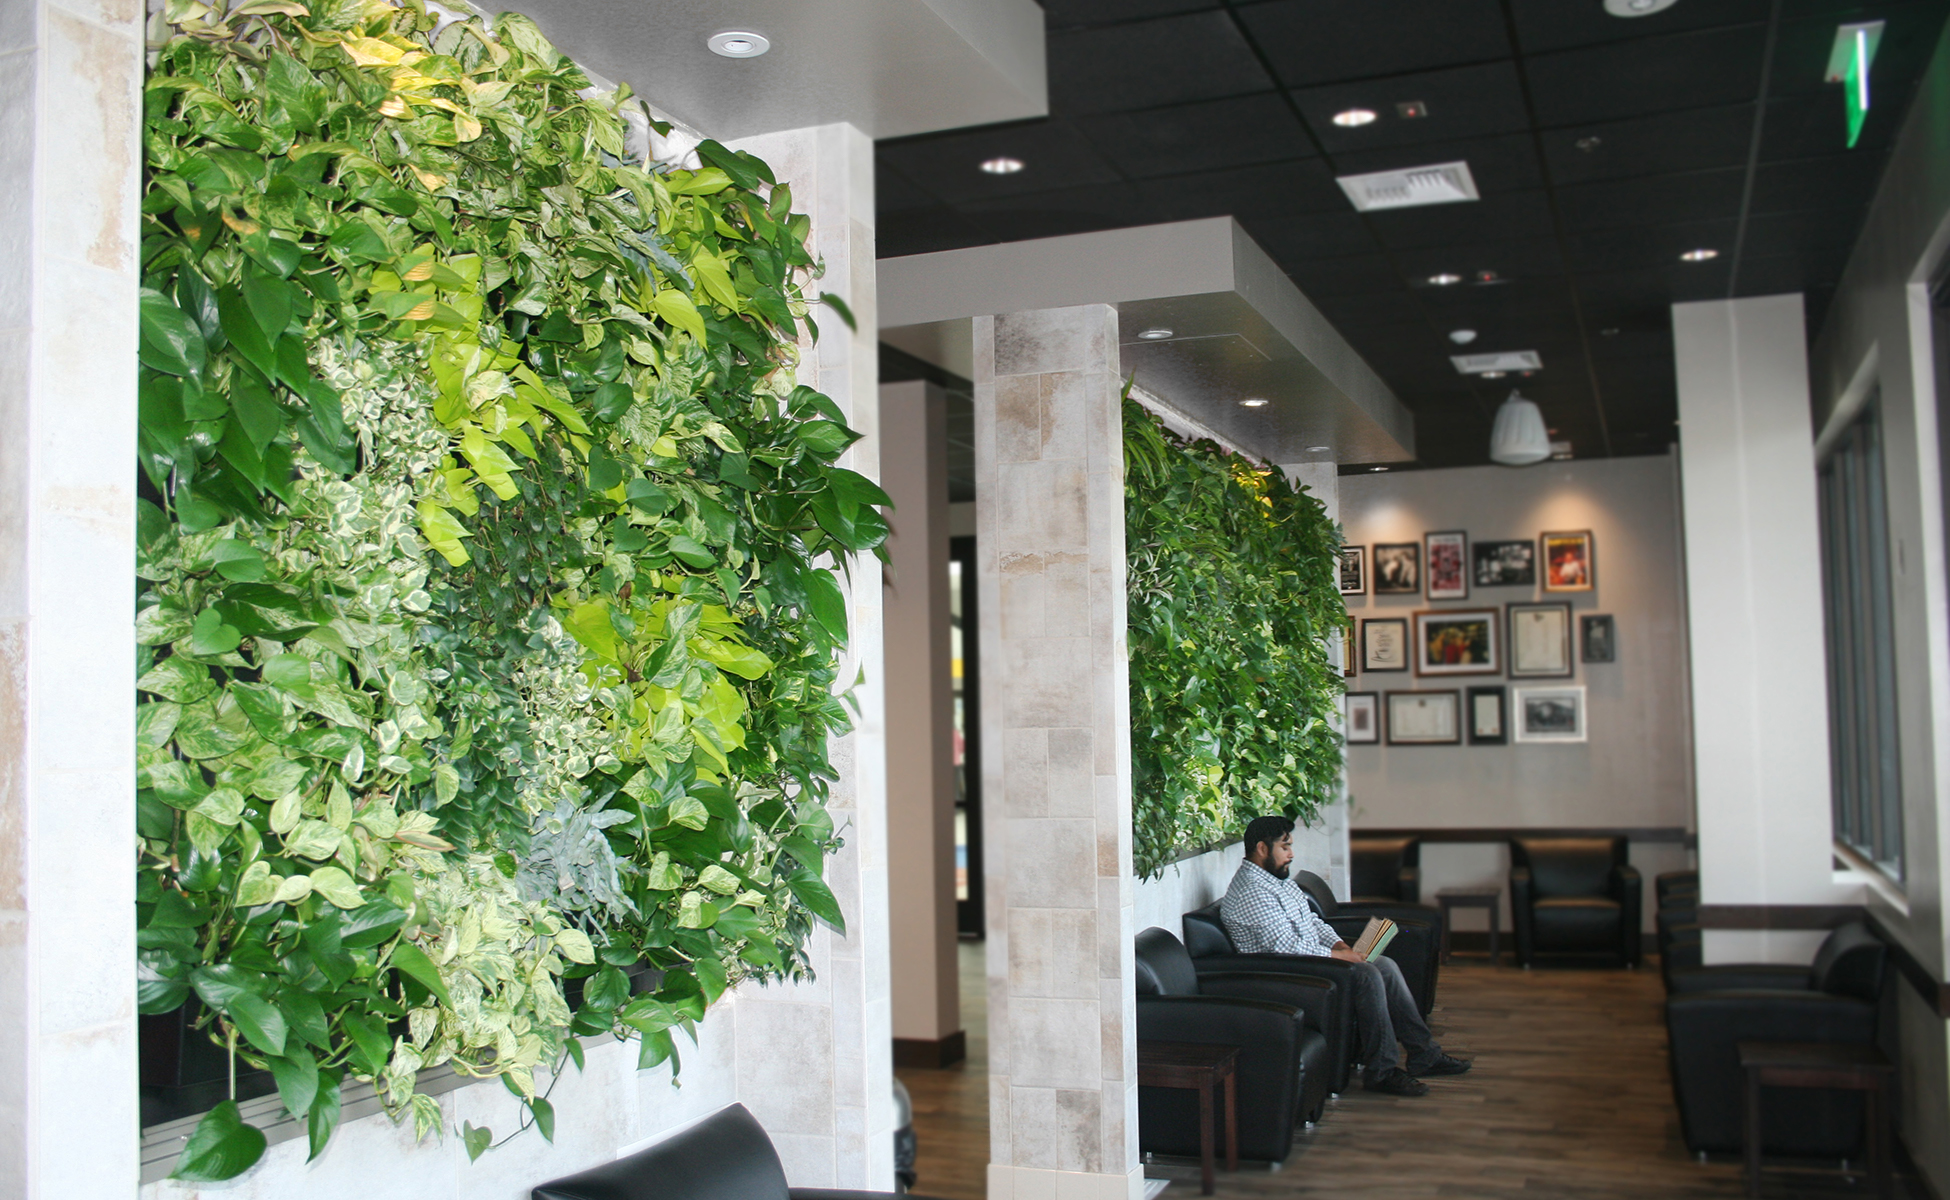 Delicieux Indoor Living Walls Such As This One Improve Indoor Air Quality.